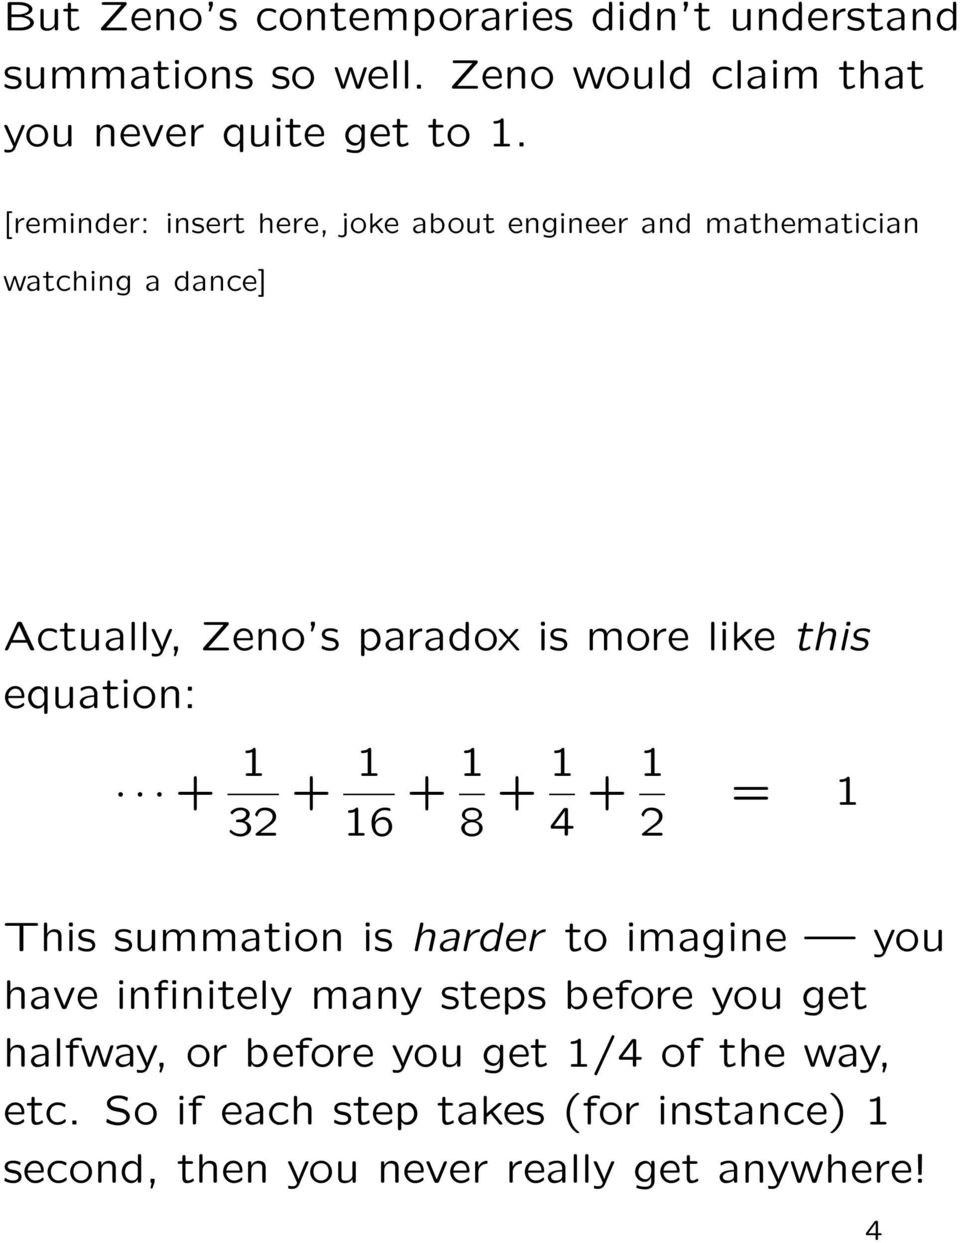 this equation: + 32 + 6 + 8 + 4 + 2 = This summation is harder to imagine you have infinitely many steps before you get